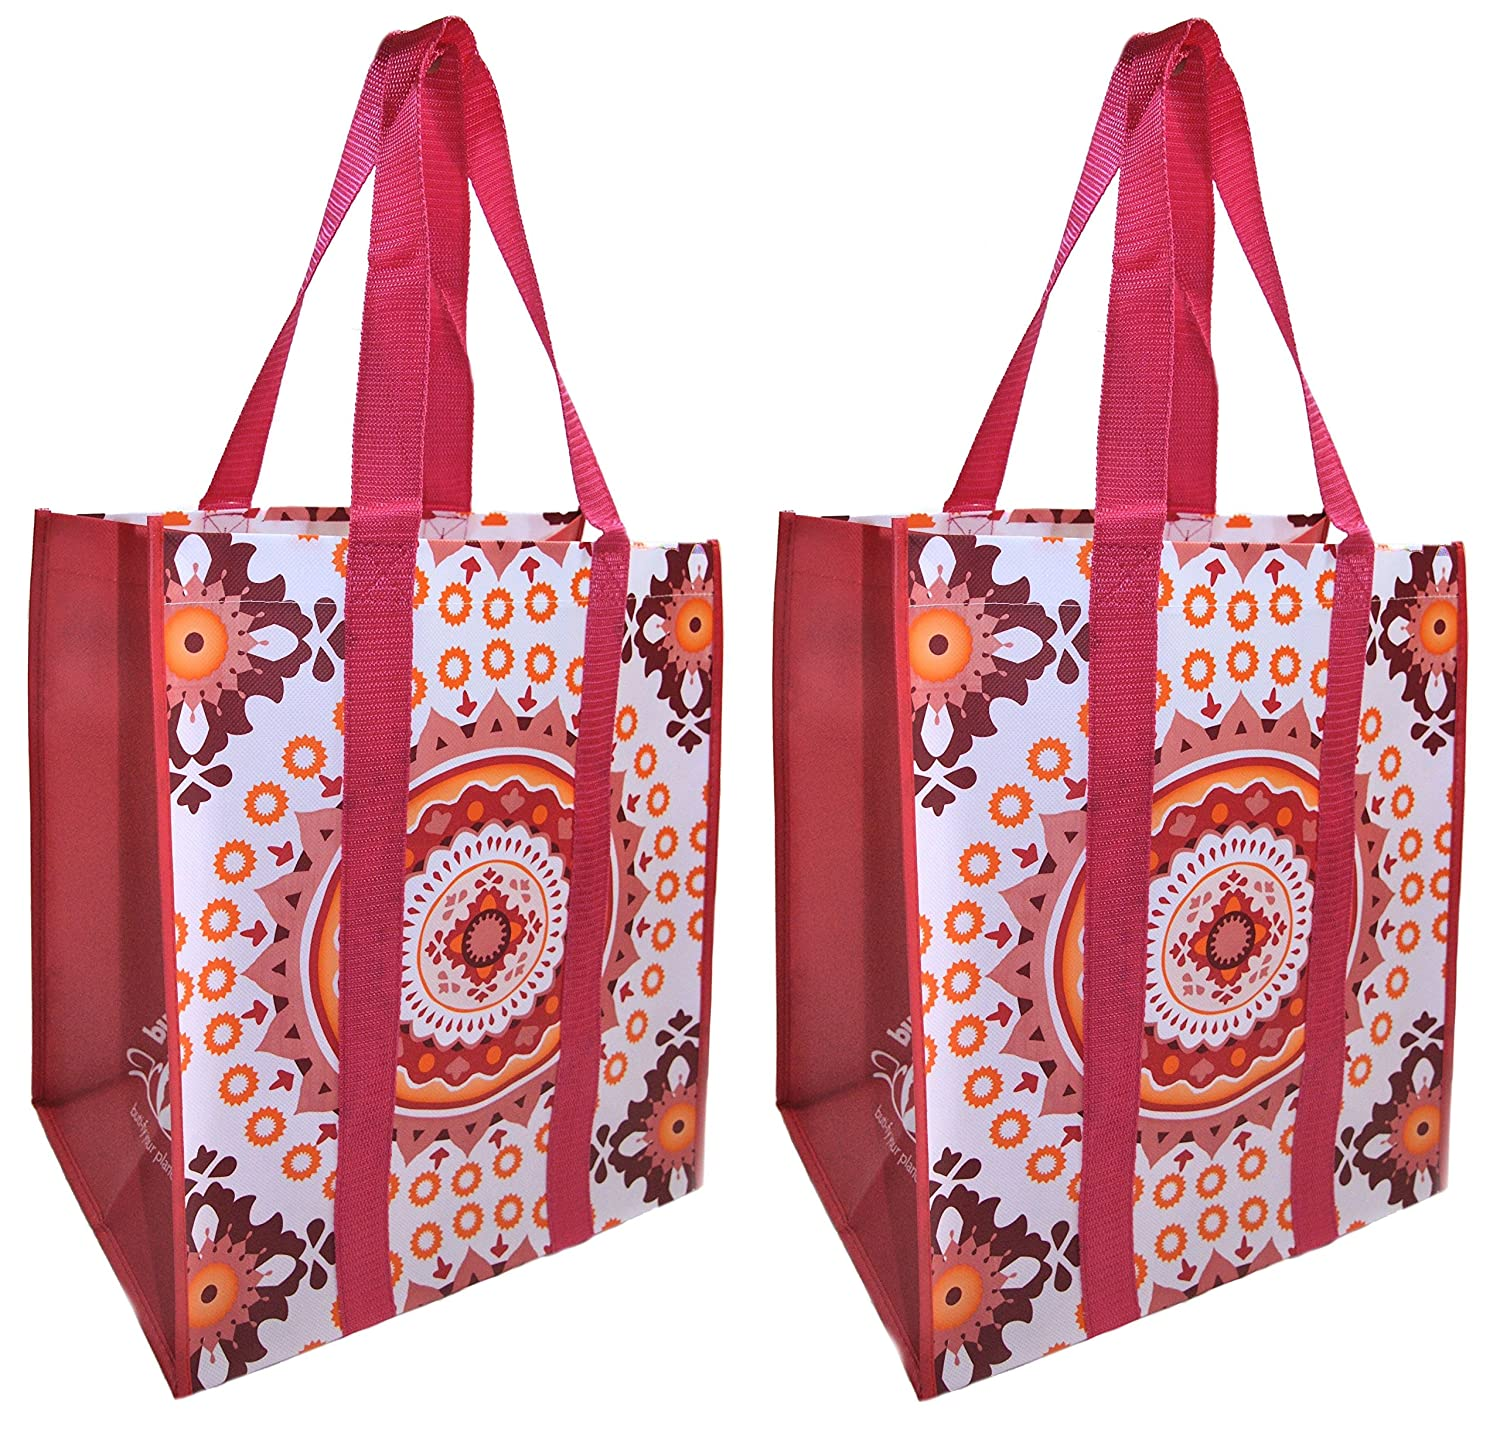 Reusable Grocery Shopping BagsPremium Heavy Duty Wipe-clean Totes (2, coral medallion) by the buti-bag company B01JWKSOSS coral medallion|2 coral medallion